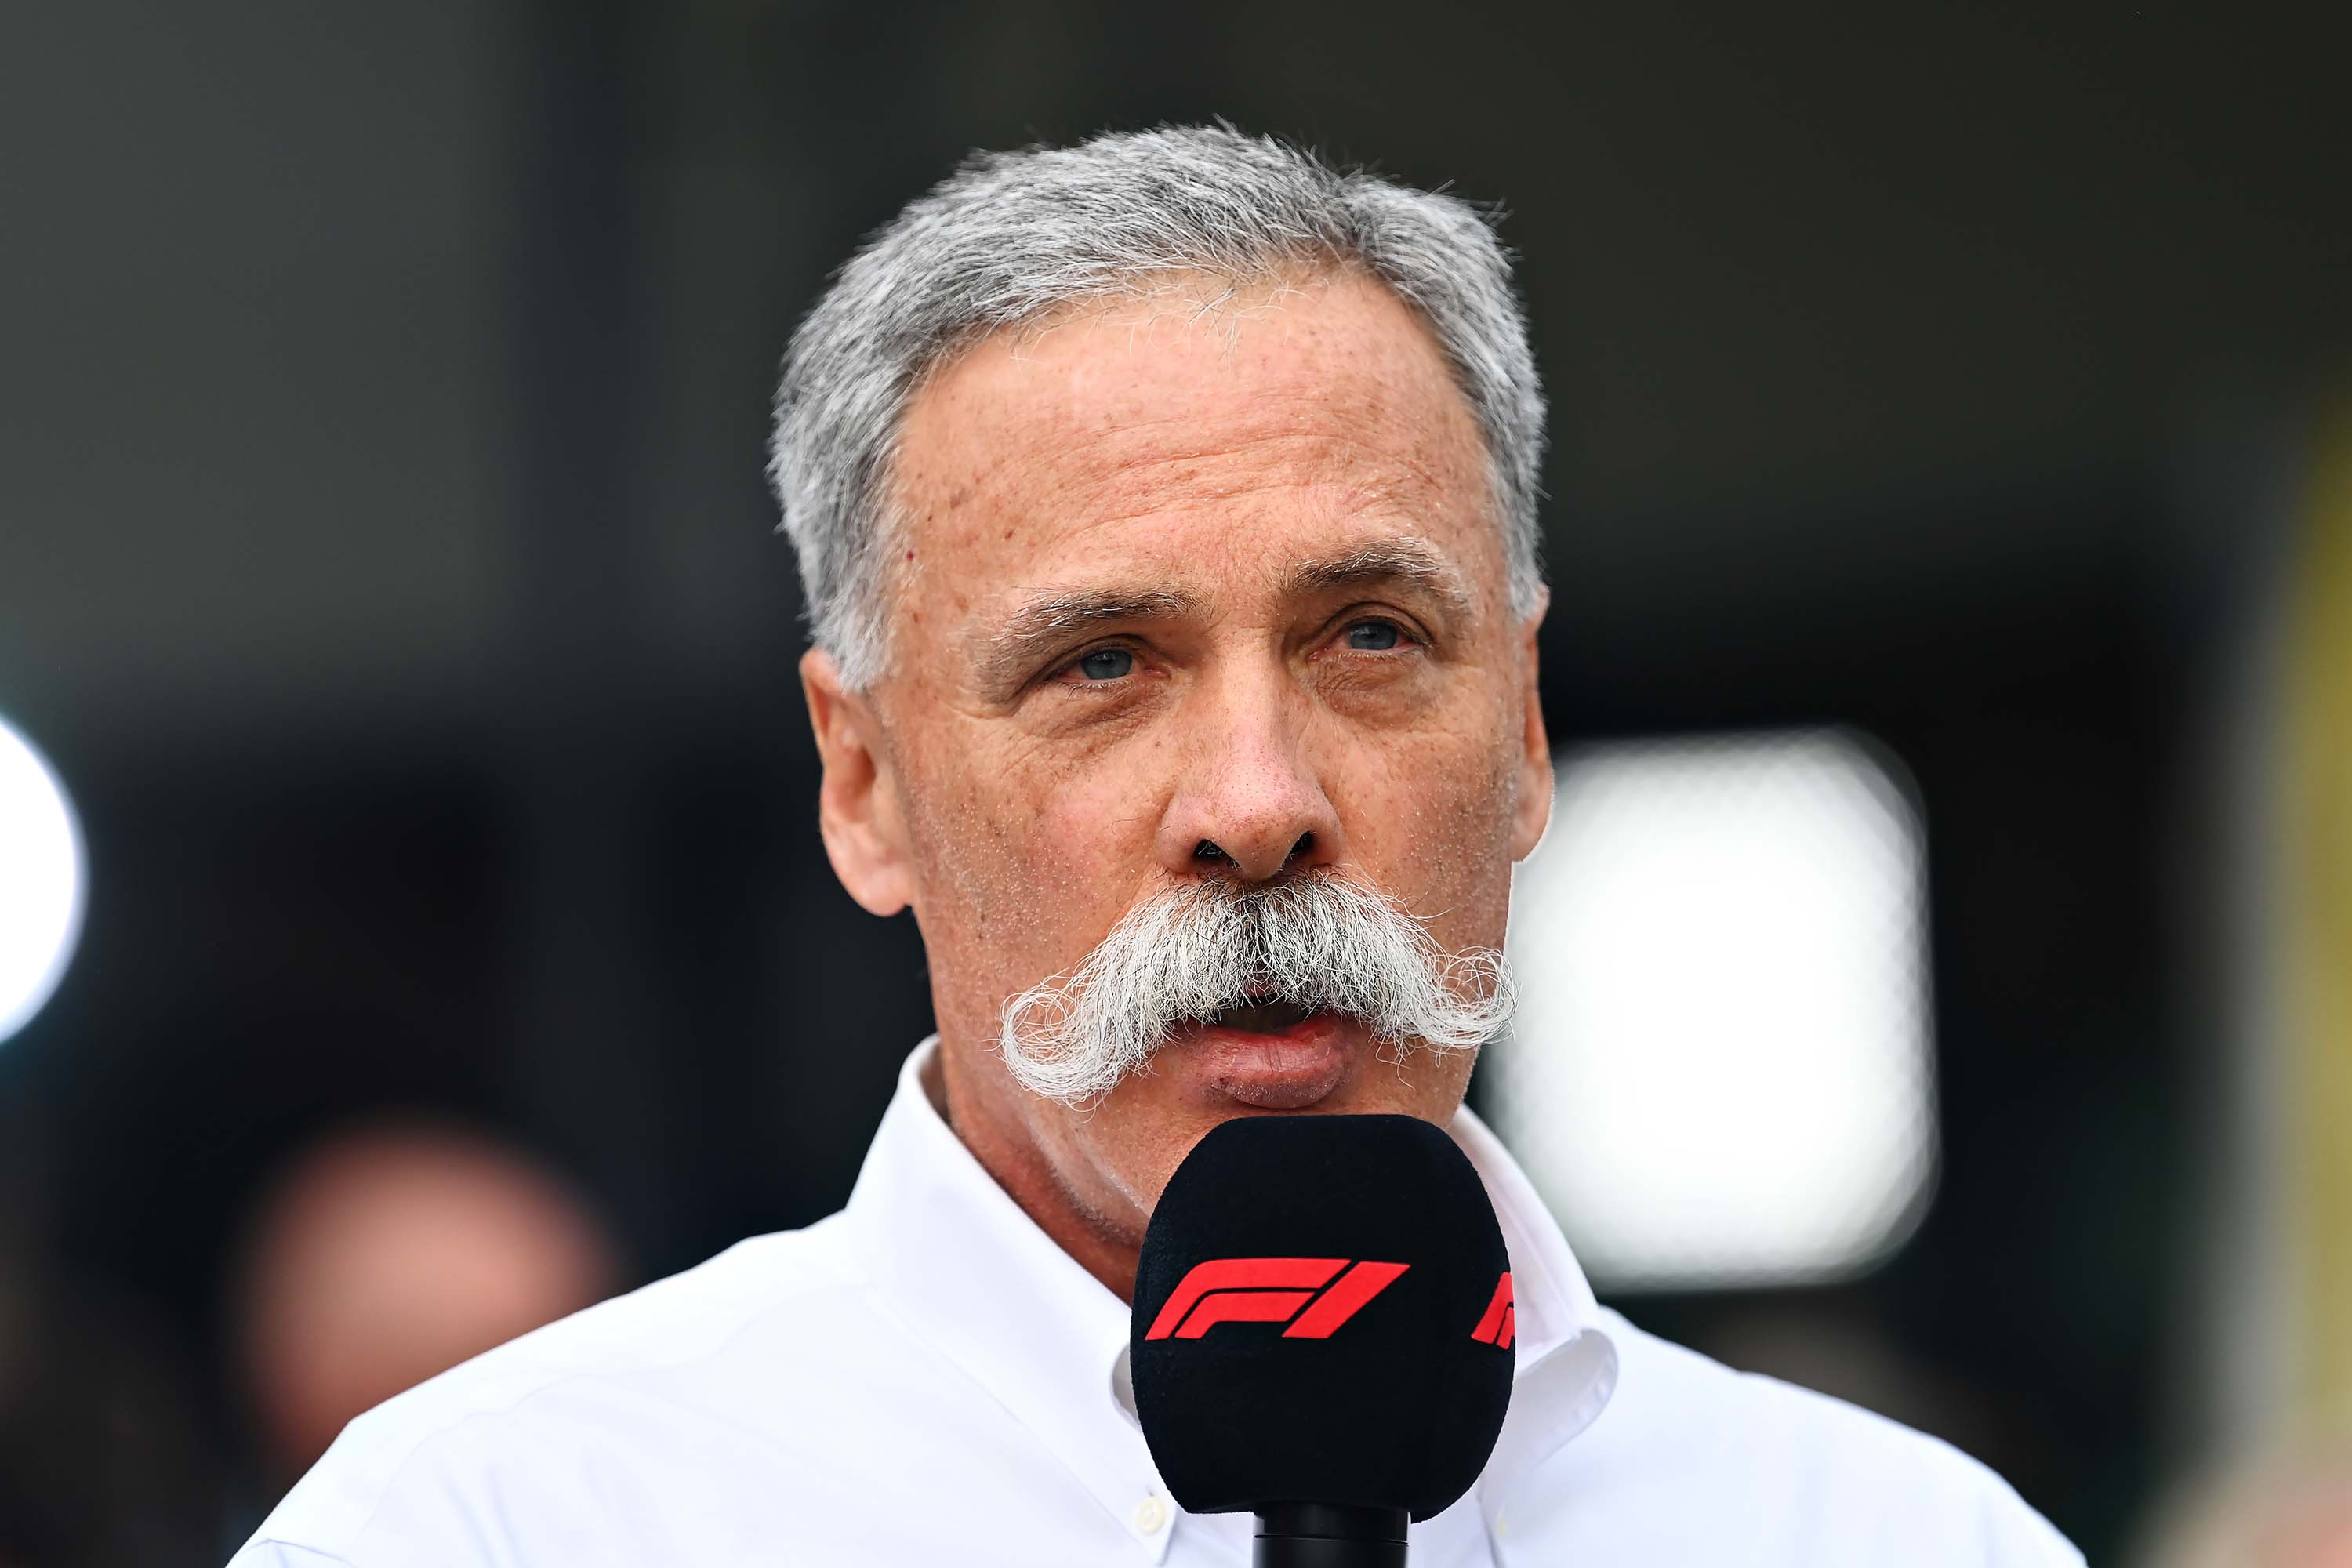 Formula One's Chief Executive Chase Carey speaks at a press conference in Melbourne, Australia, on March 13, after the F1 Grand Prix of Australia was cancelled.